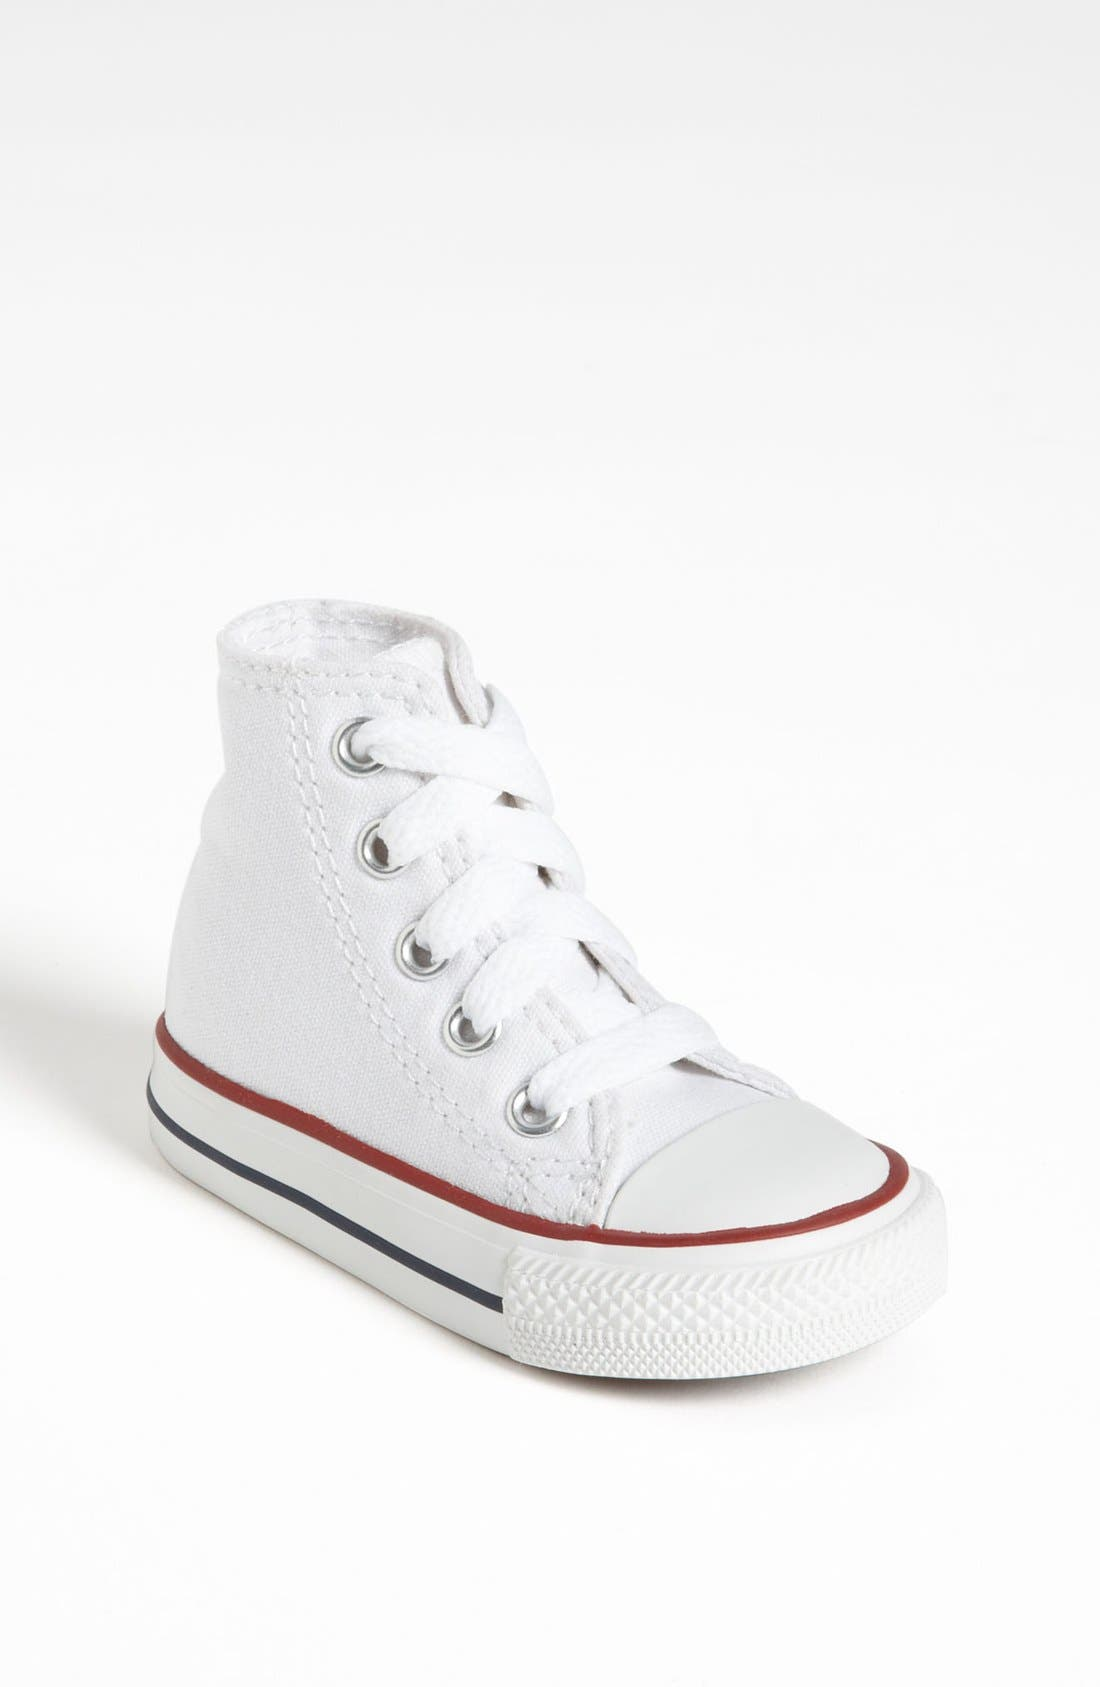 Alternate Image 1 Selected - Converse All Star® High Top Sneaker (Baby, Walker & Toddler)